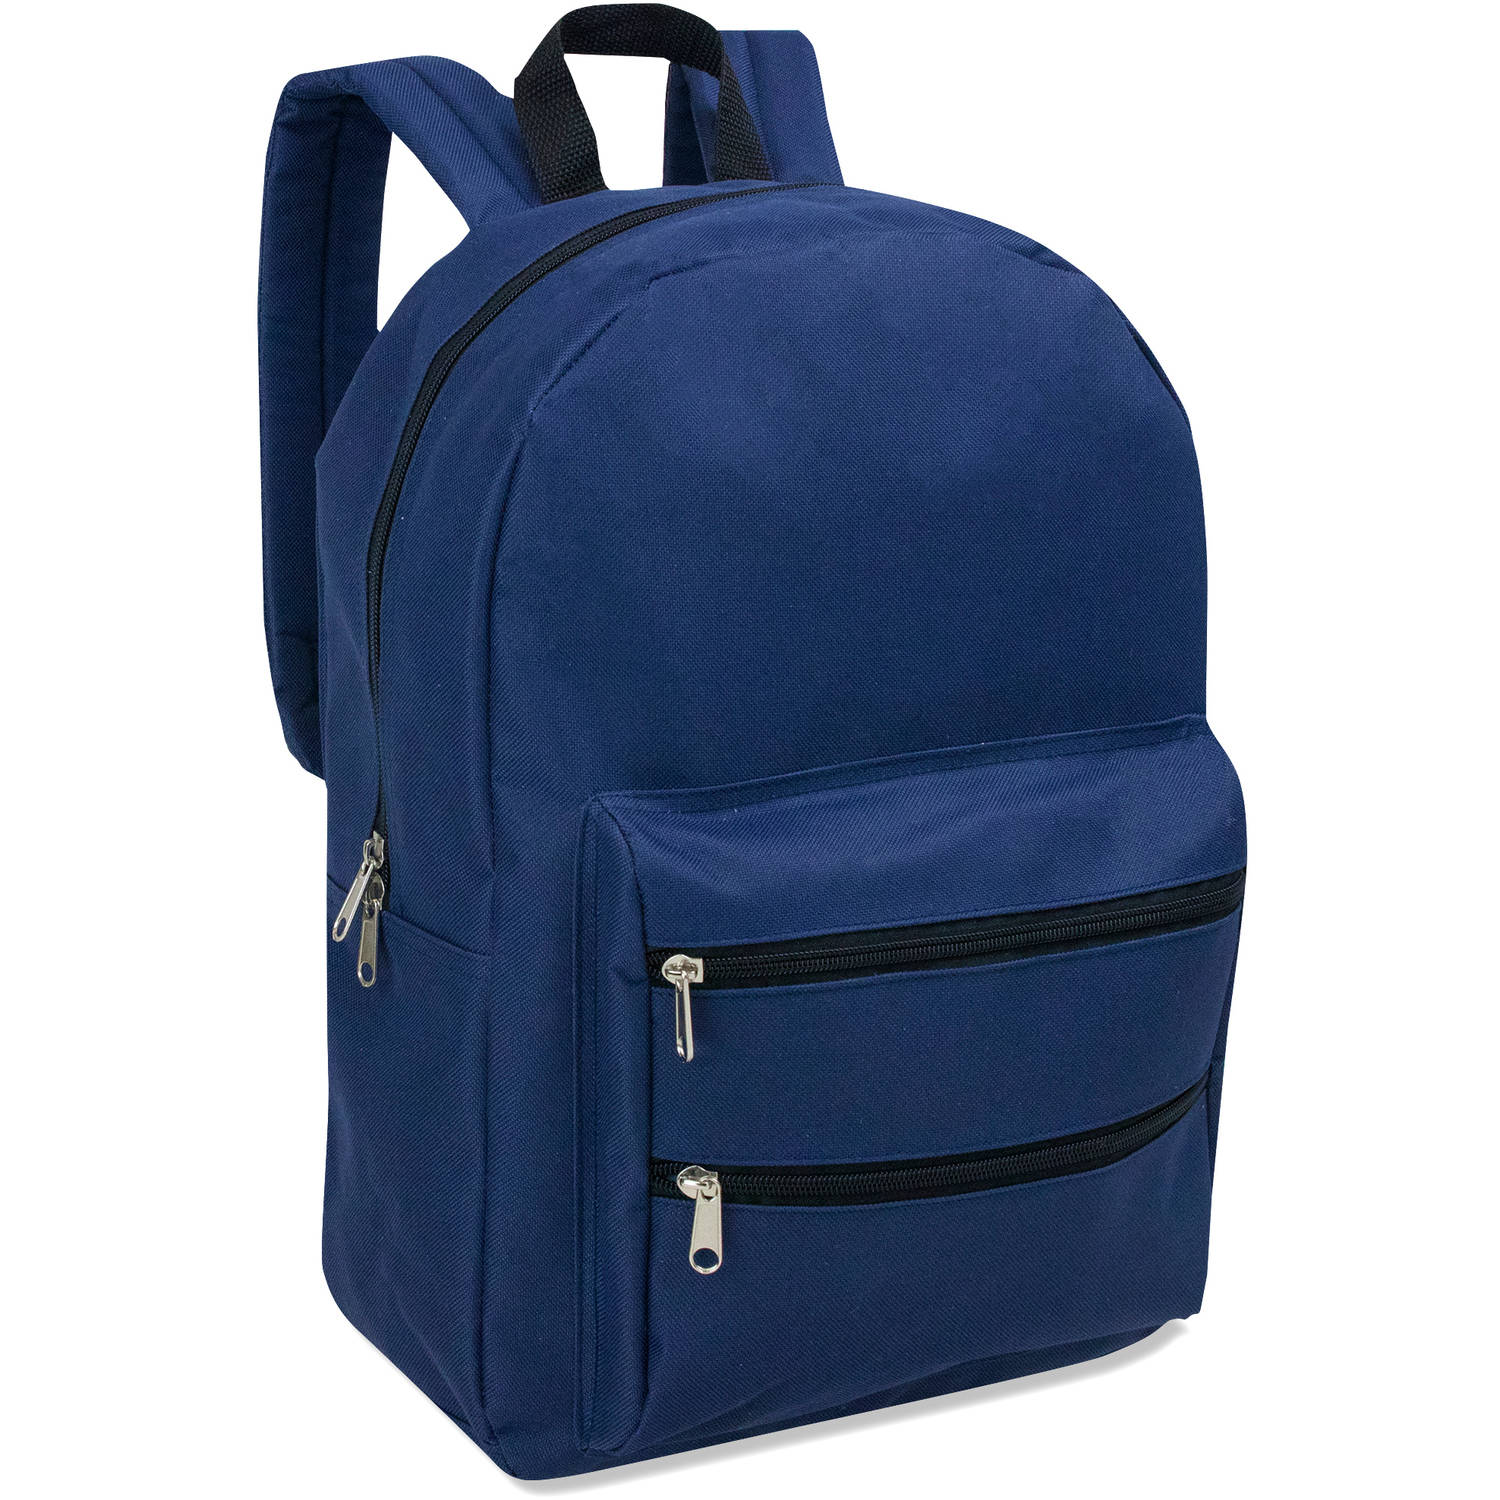 17 Inch Full Size Dome Backpack With Double Zippered Pocket